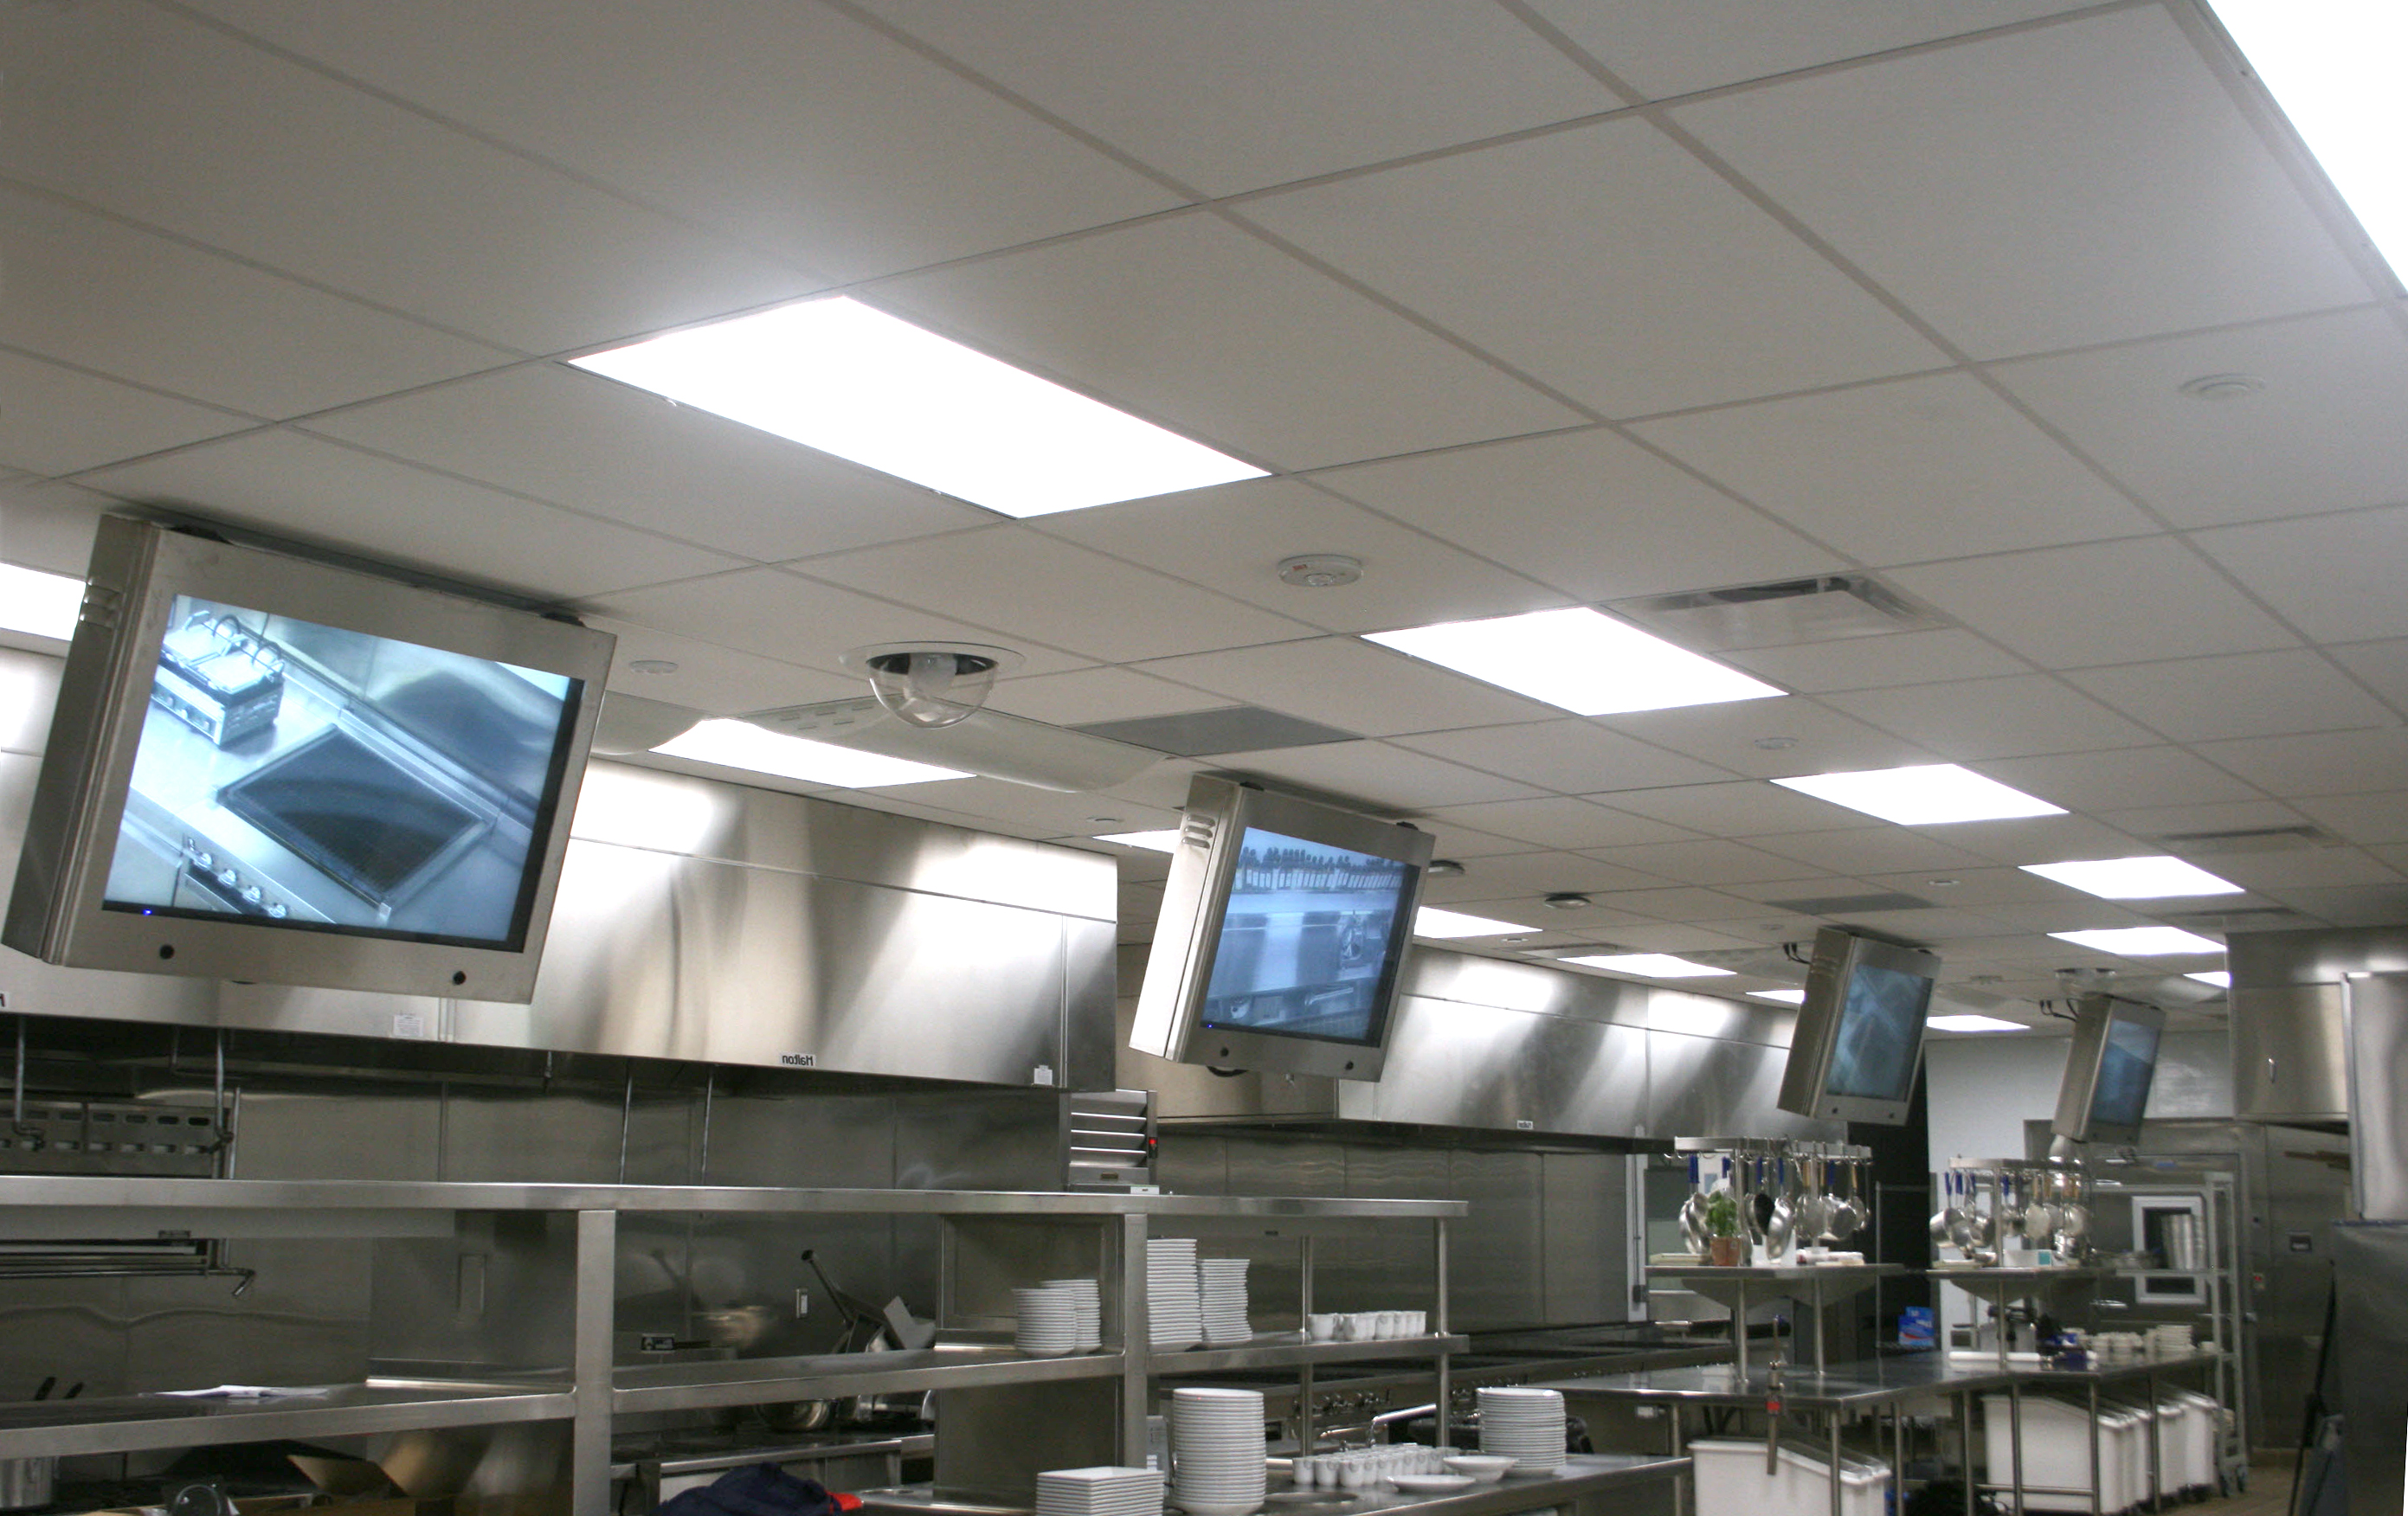 Flat panel displays that are angle-mounted above kitchen workstations